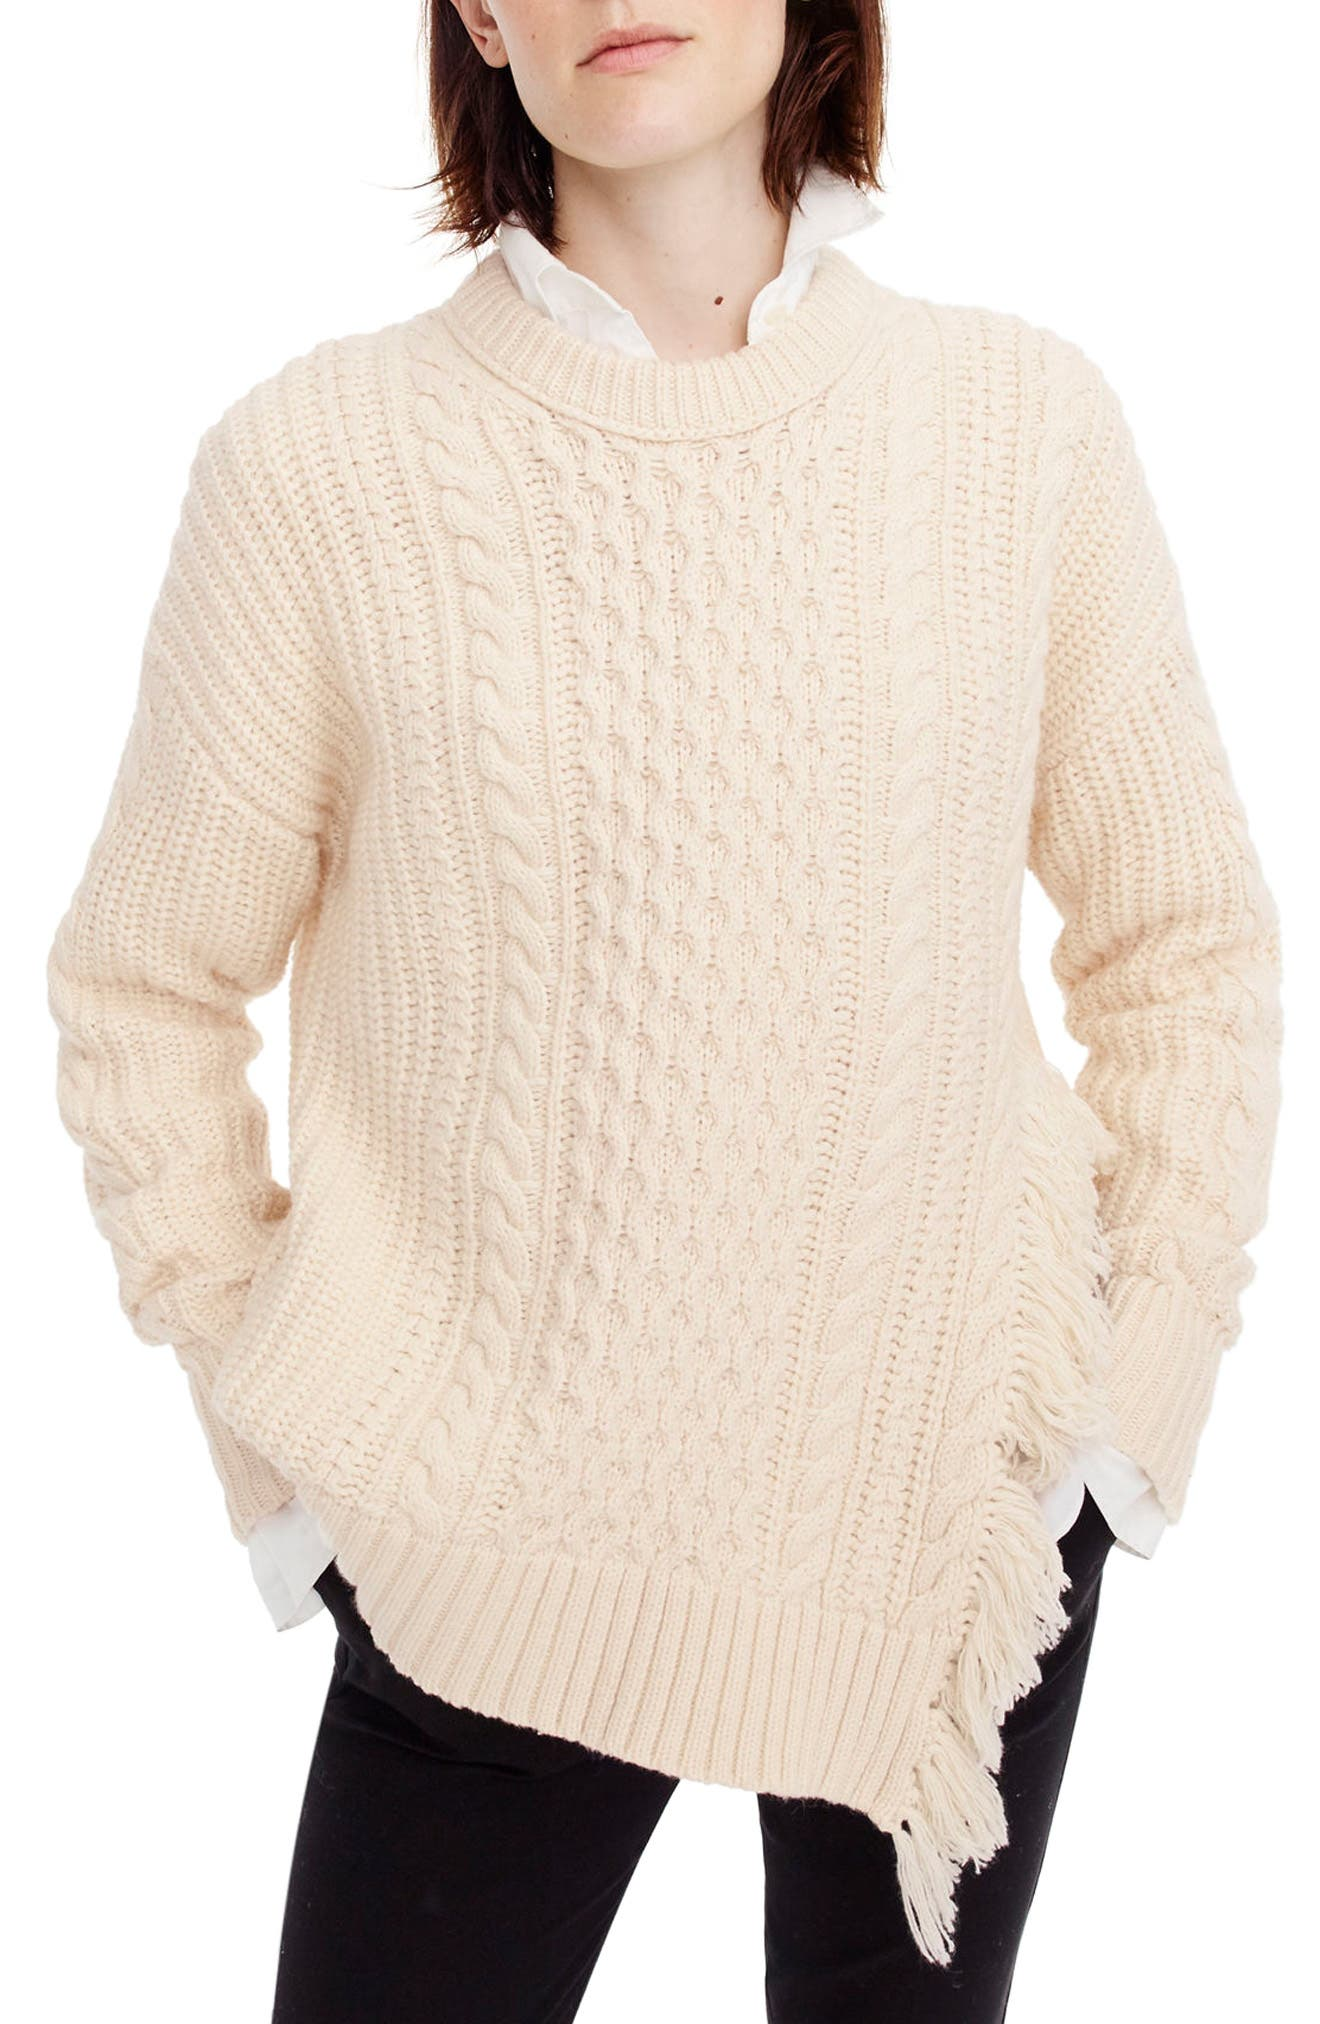 Main Image - J.Crew Fringe Detail Cable Knit Sweater